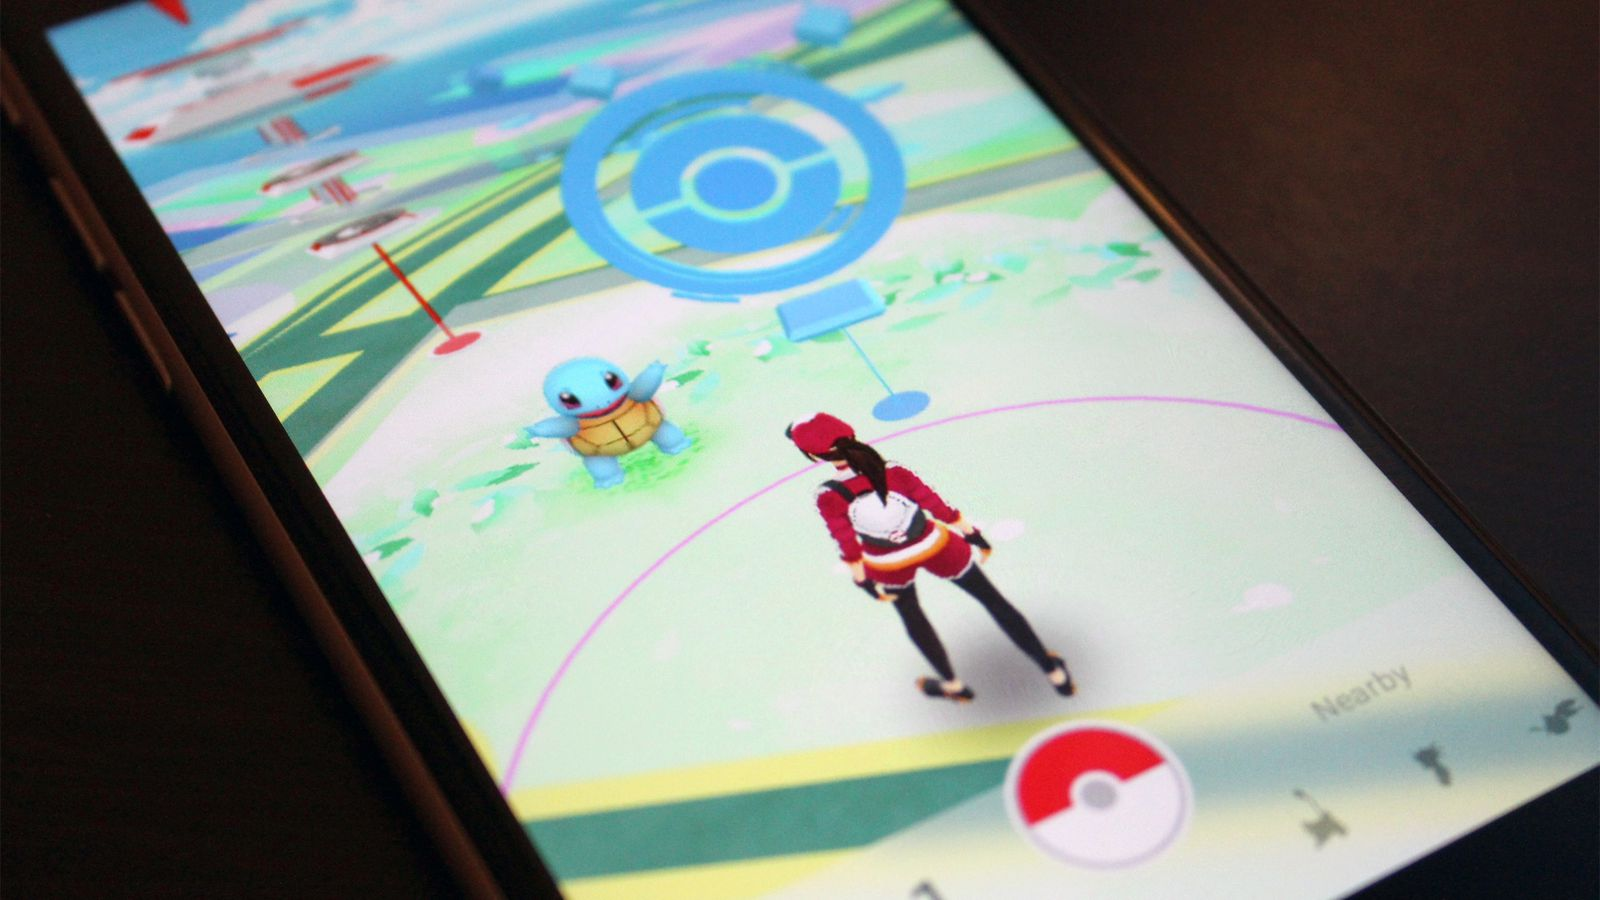 Pokémon Go goes live on iTunes and Google Play stores